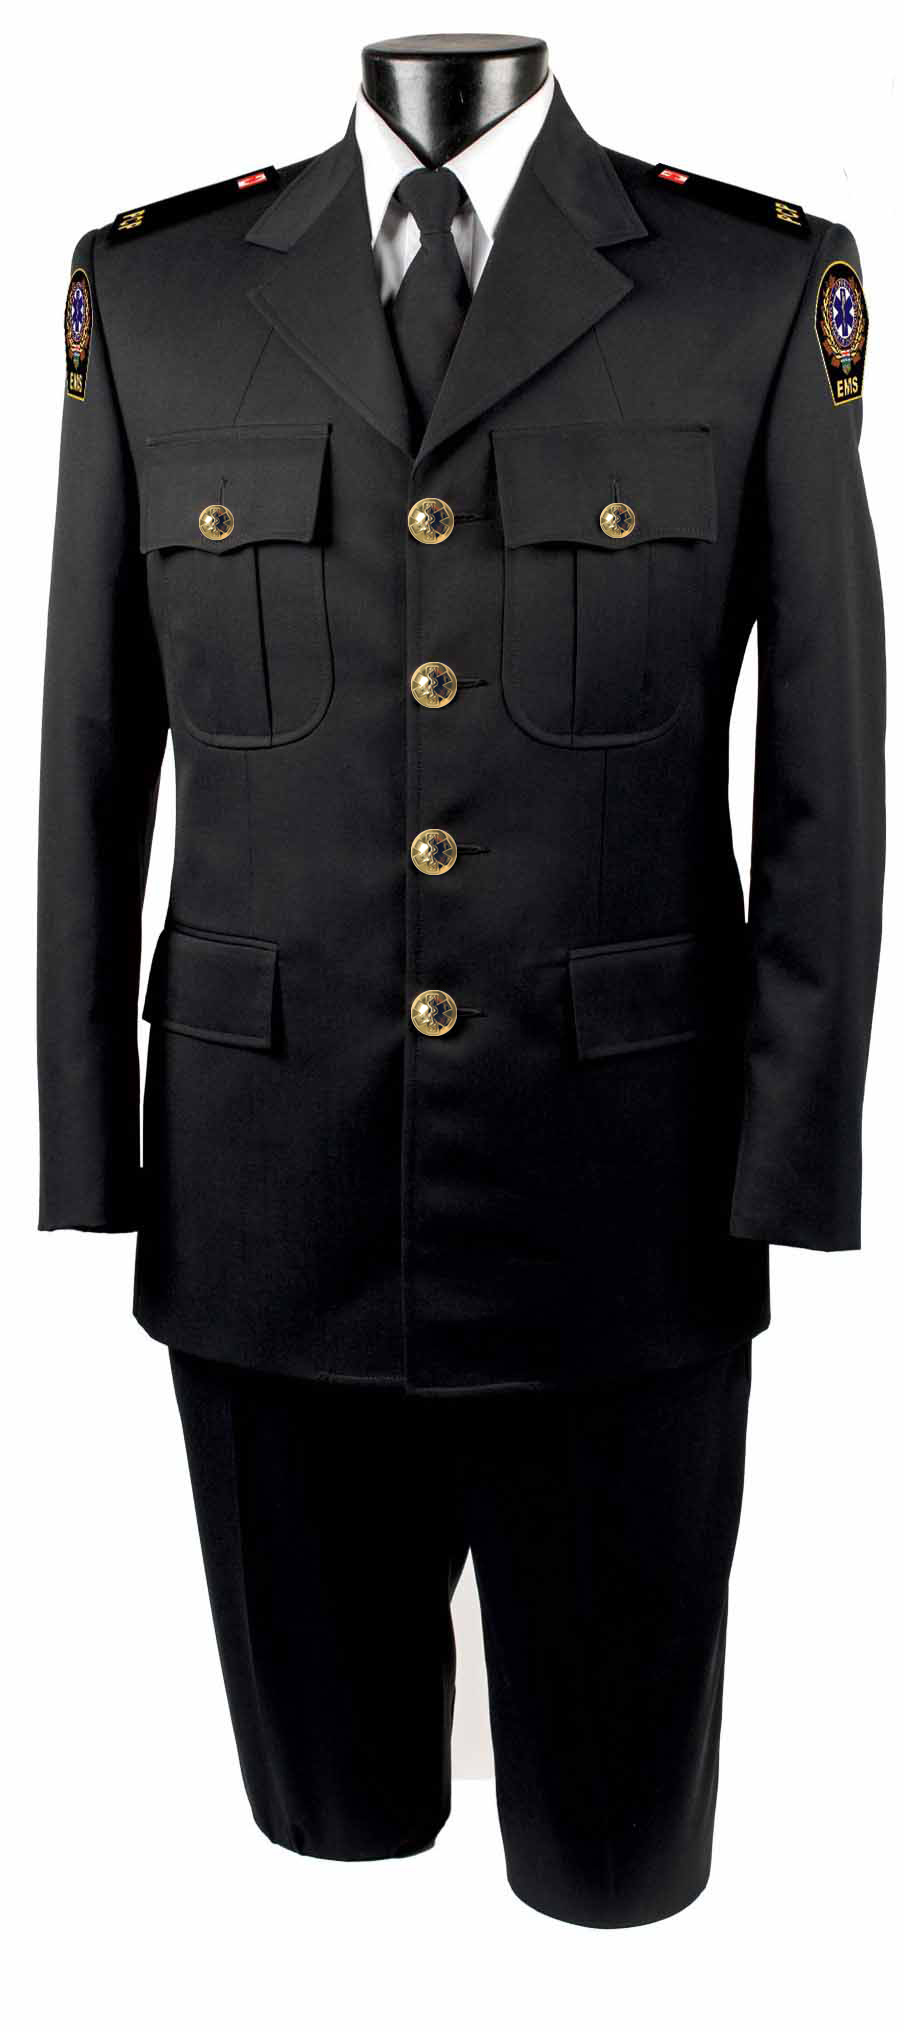 Male Four Button Single Breasted Tunic Jacket -Derks Uniforms